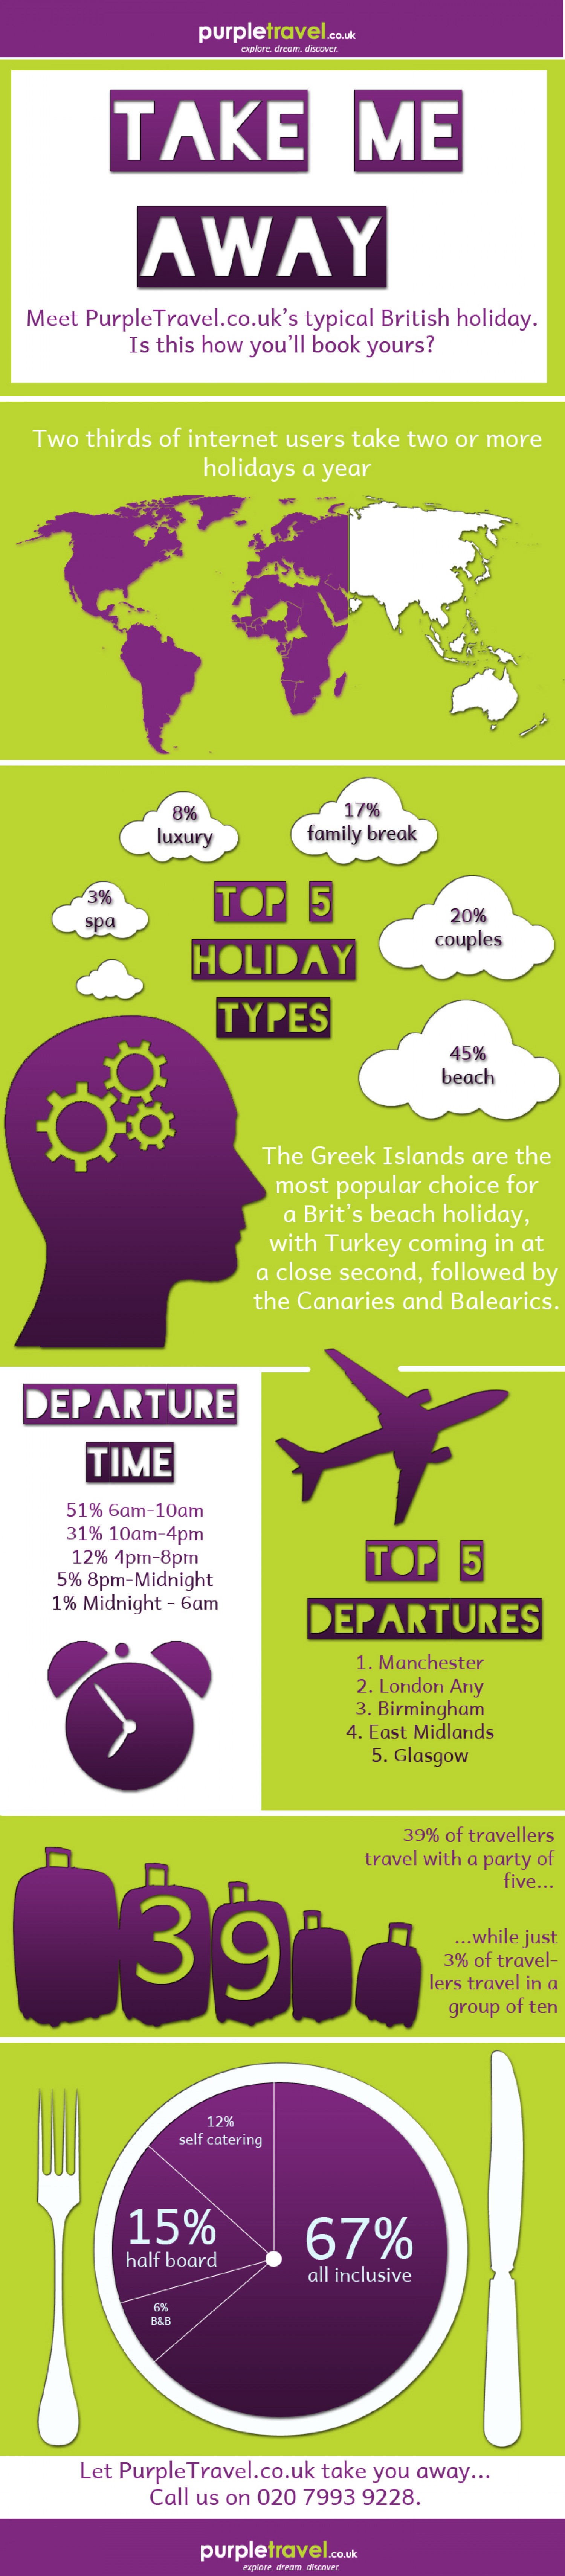 Take Me Away Infographic